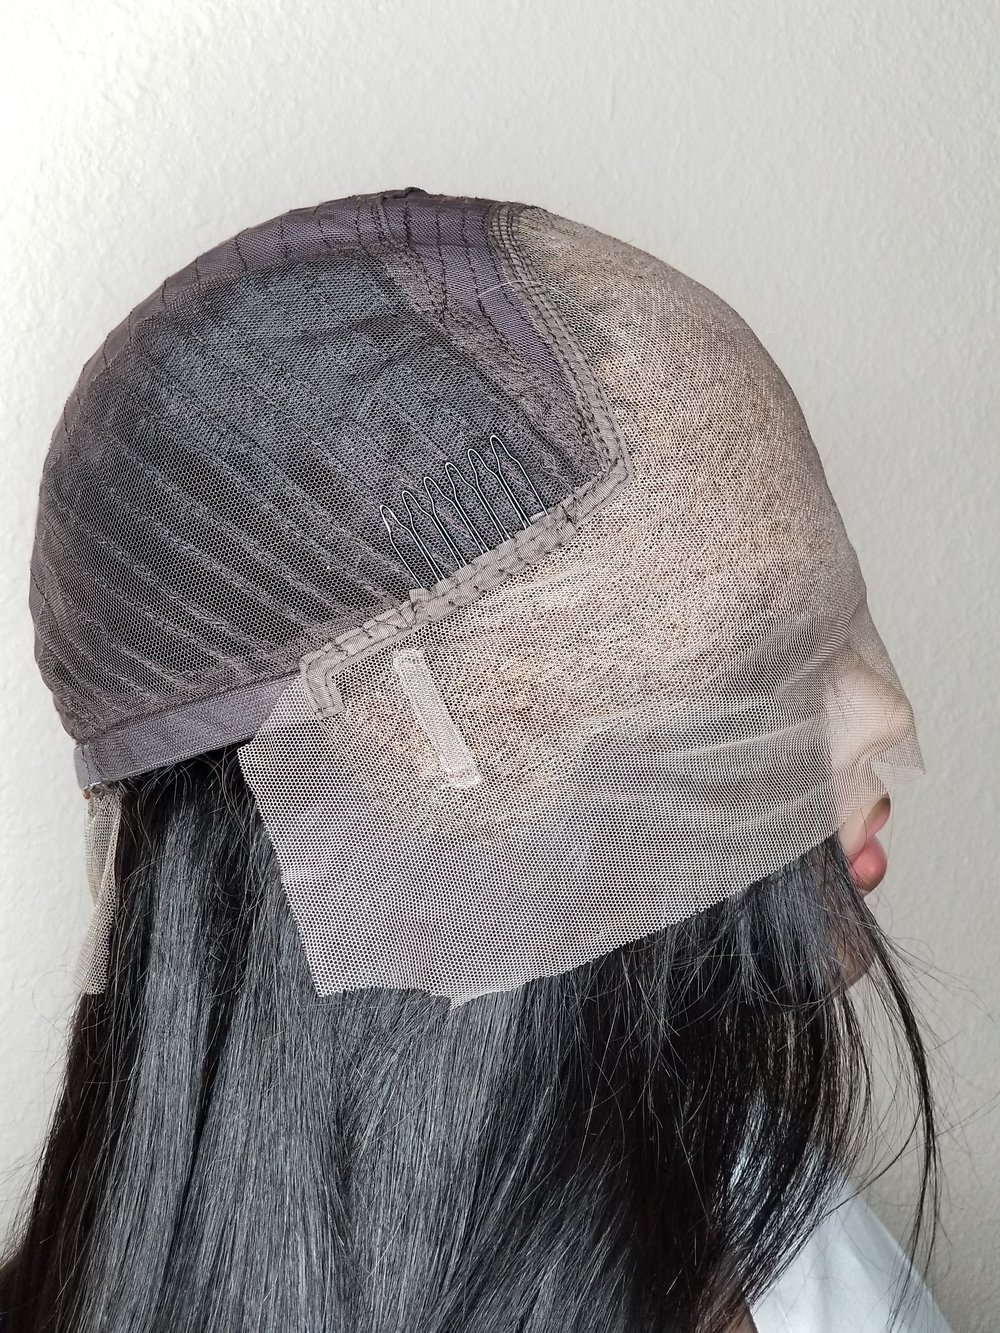 Inside of a lace frontal wig unit